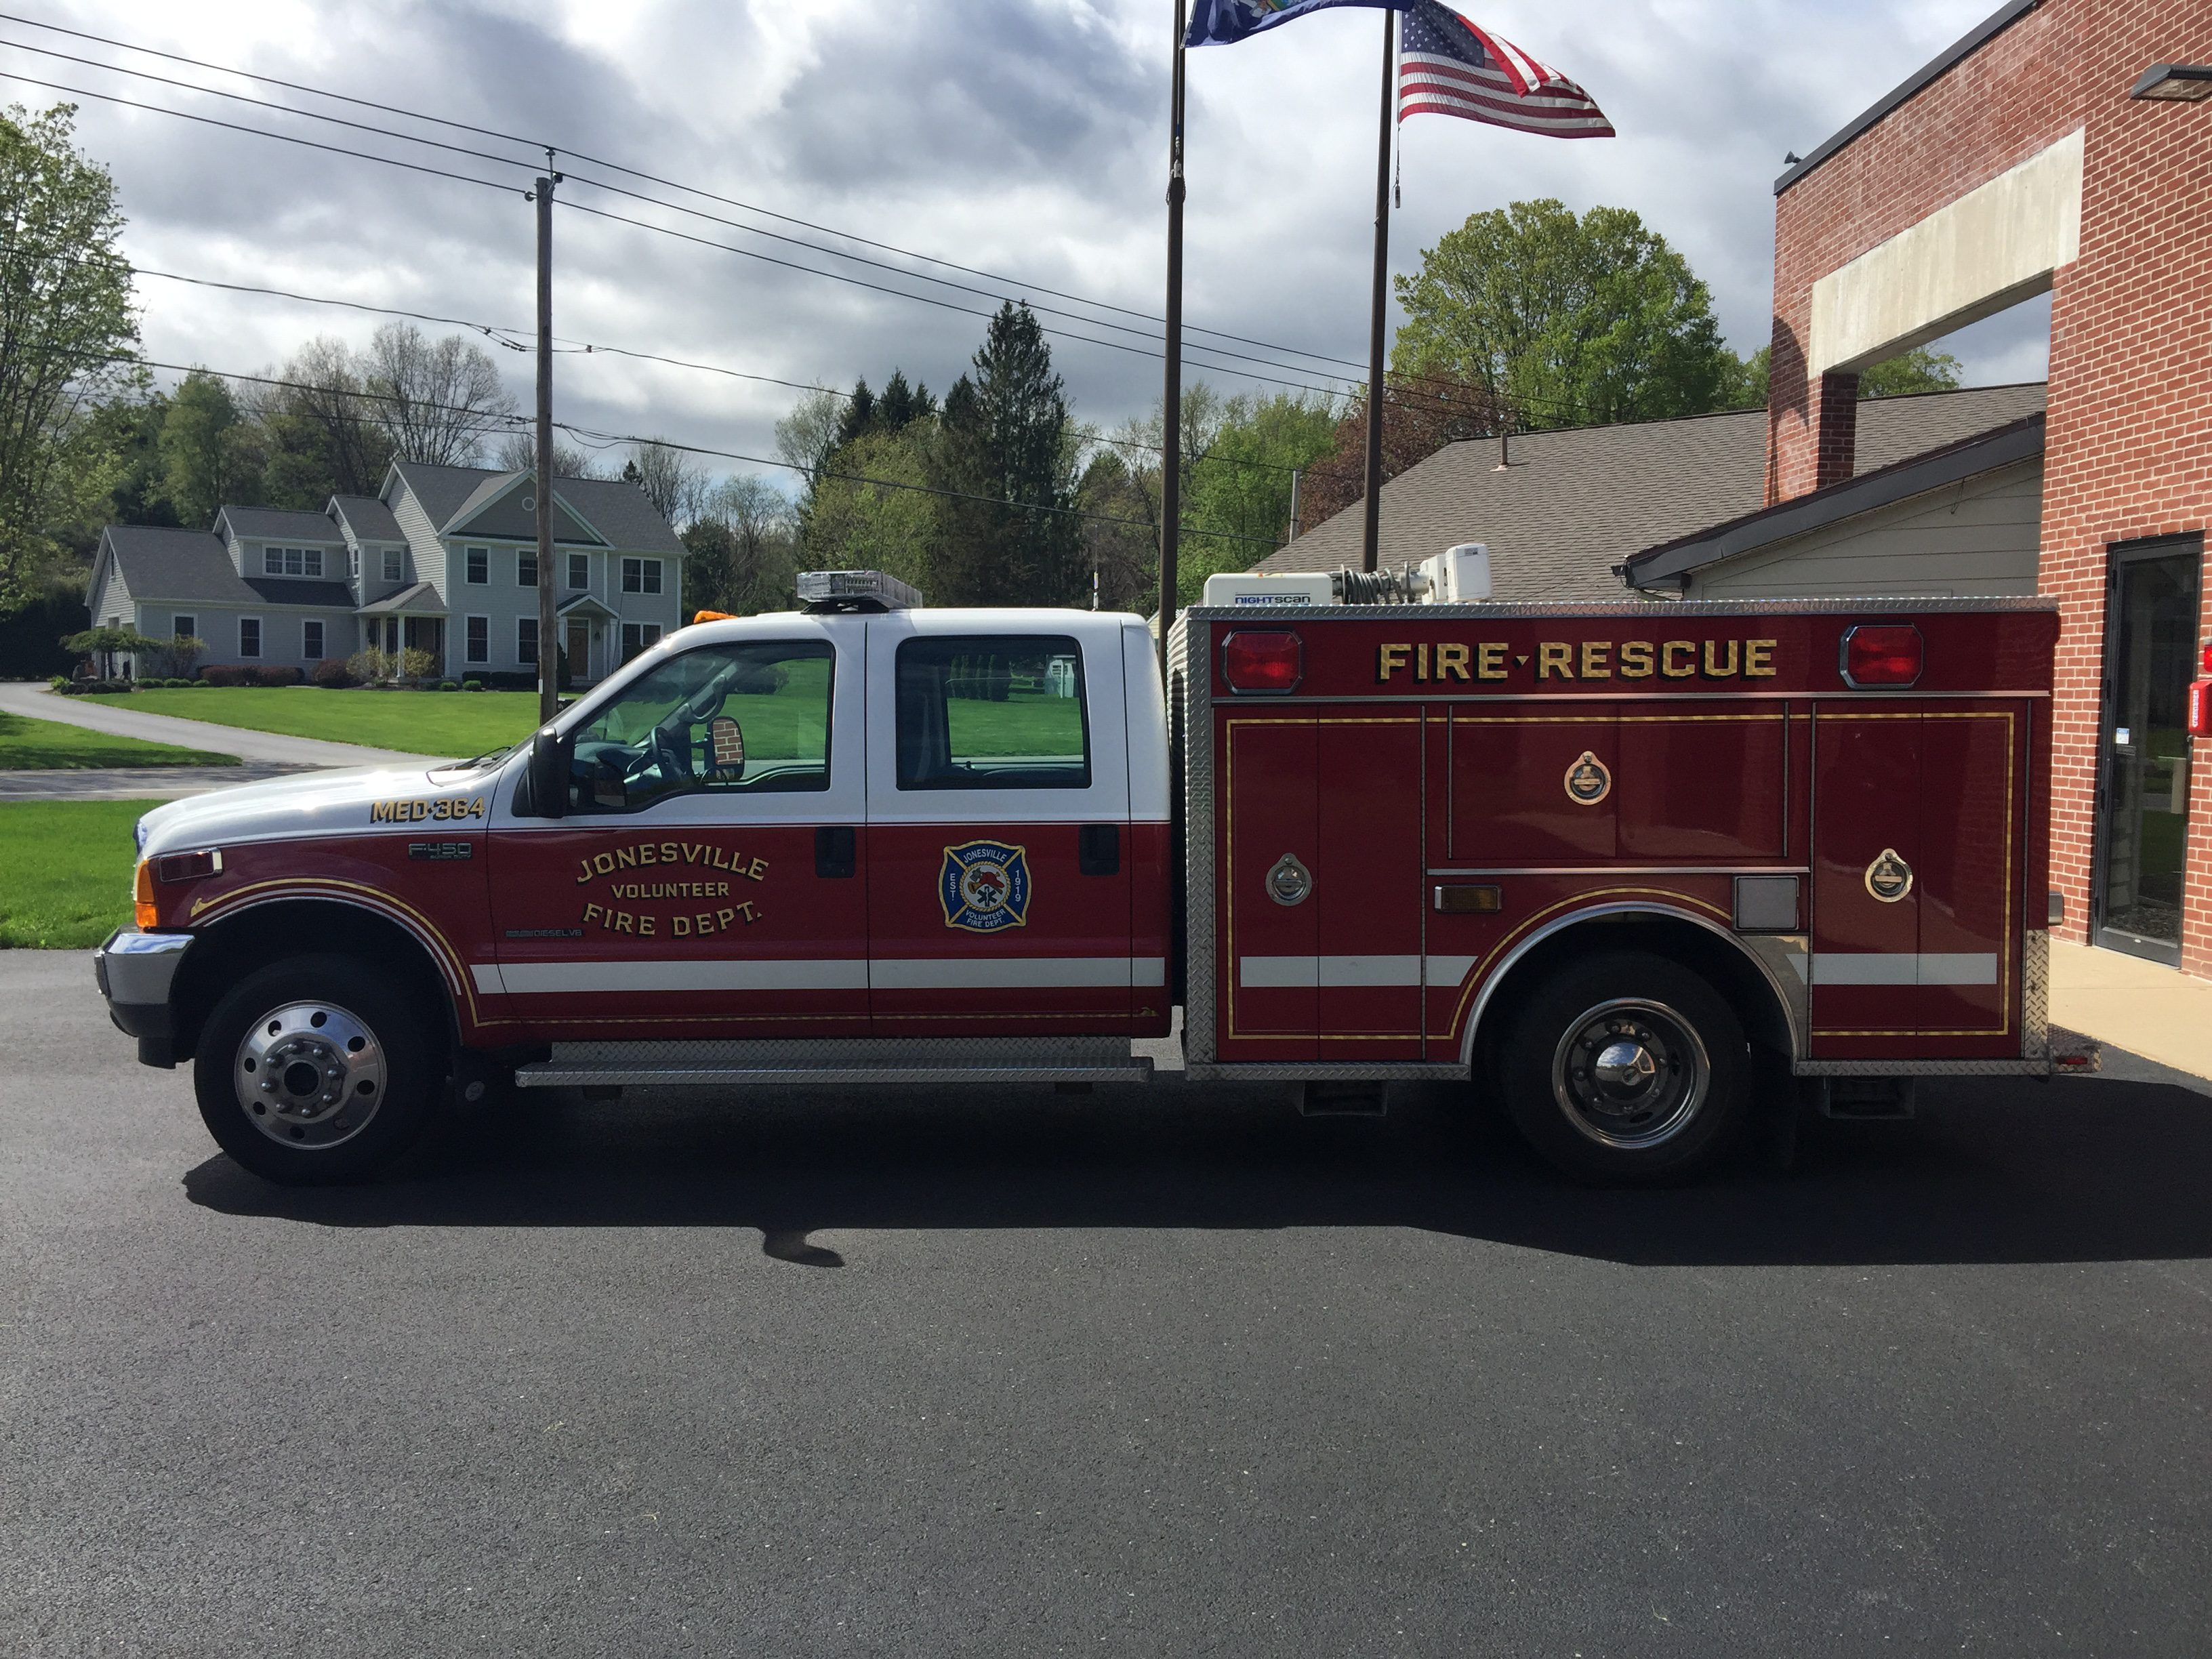 For Sale: 2001 Ford Fire Rescue EMS Vehicle – old MED 364